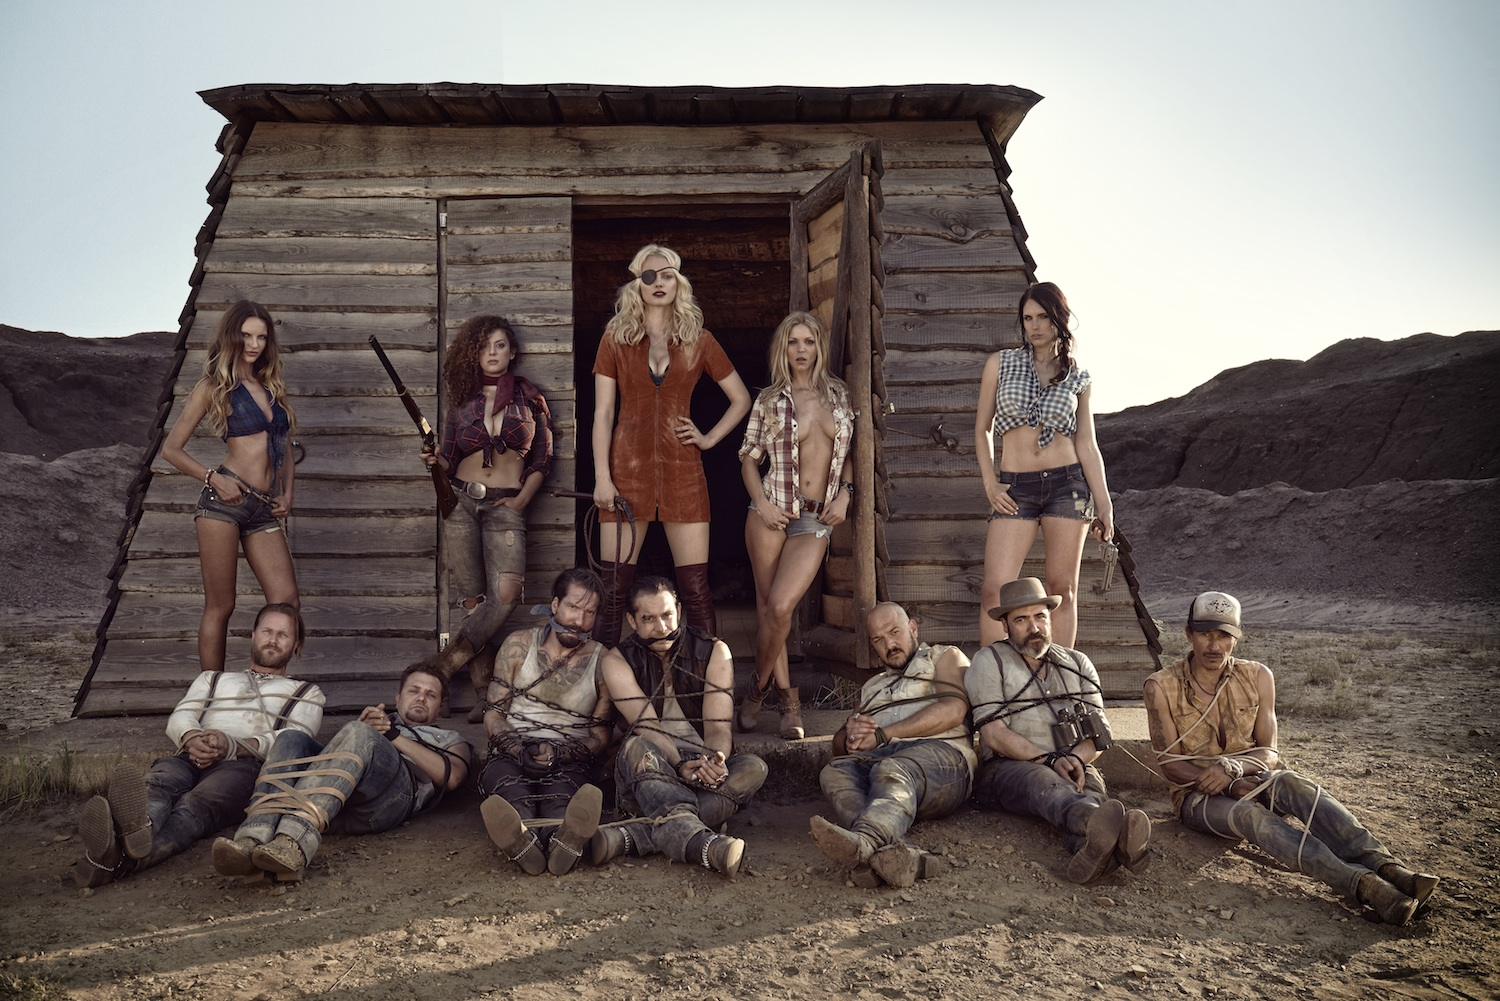 THE BOSSHOSS -  'DOS BROS' Videopremiere | Das Musikvideo des Tages